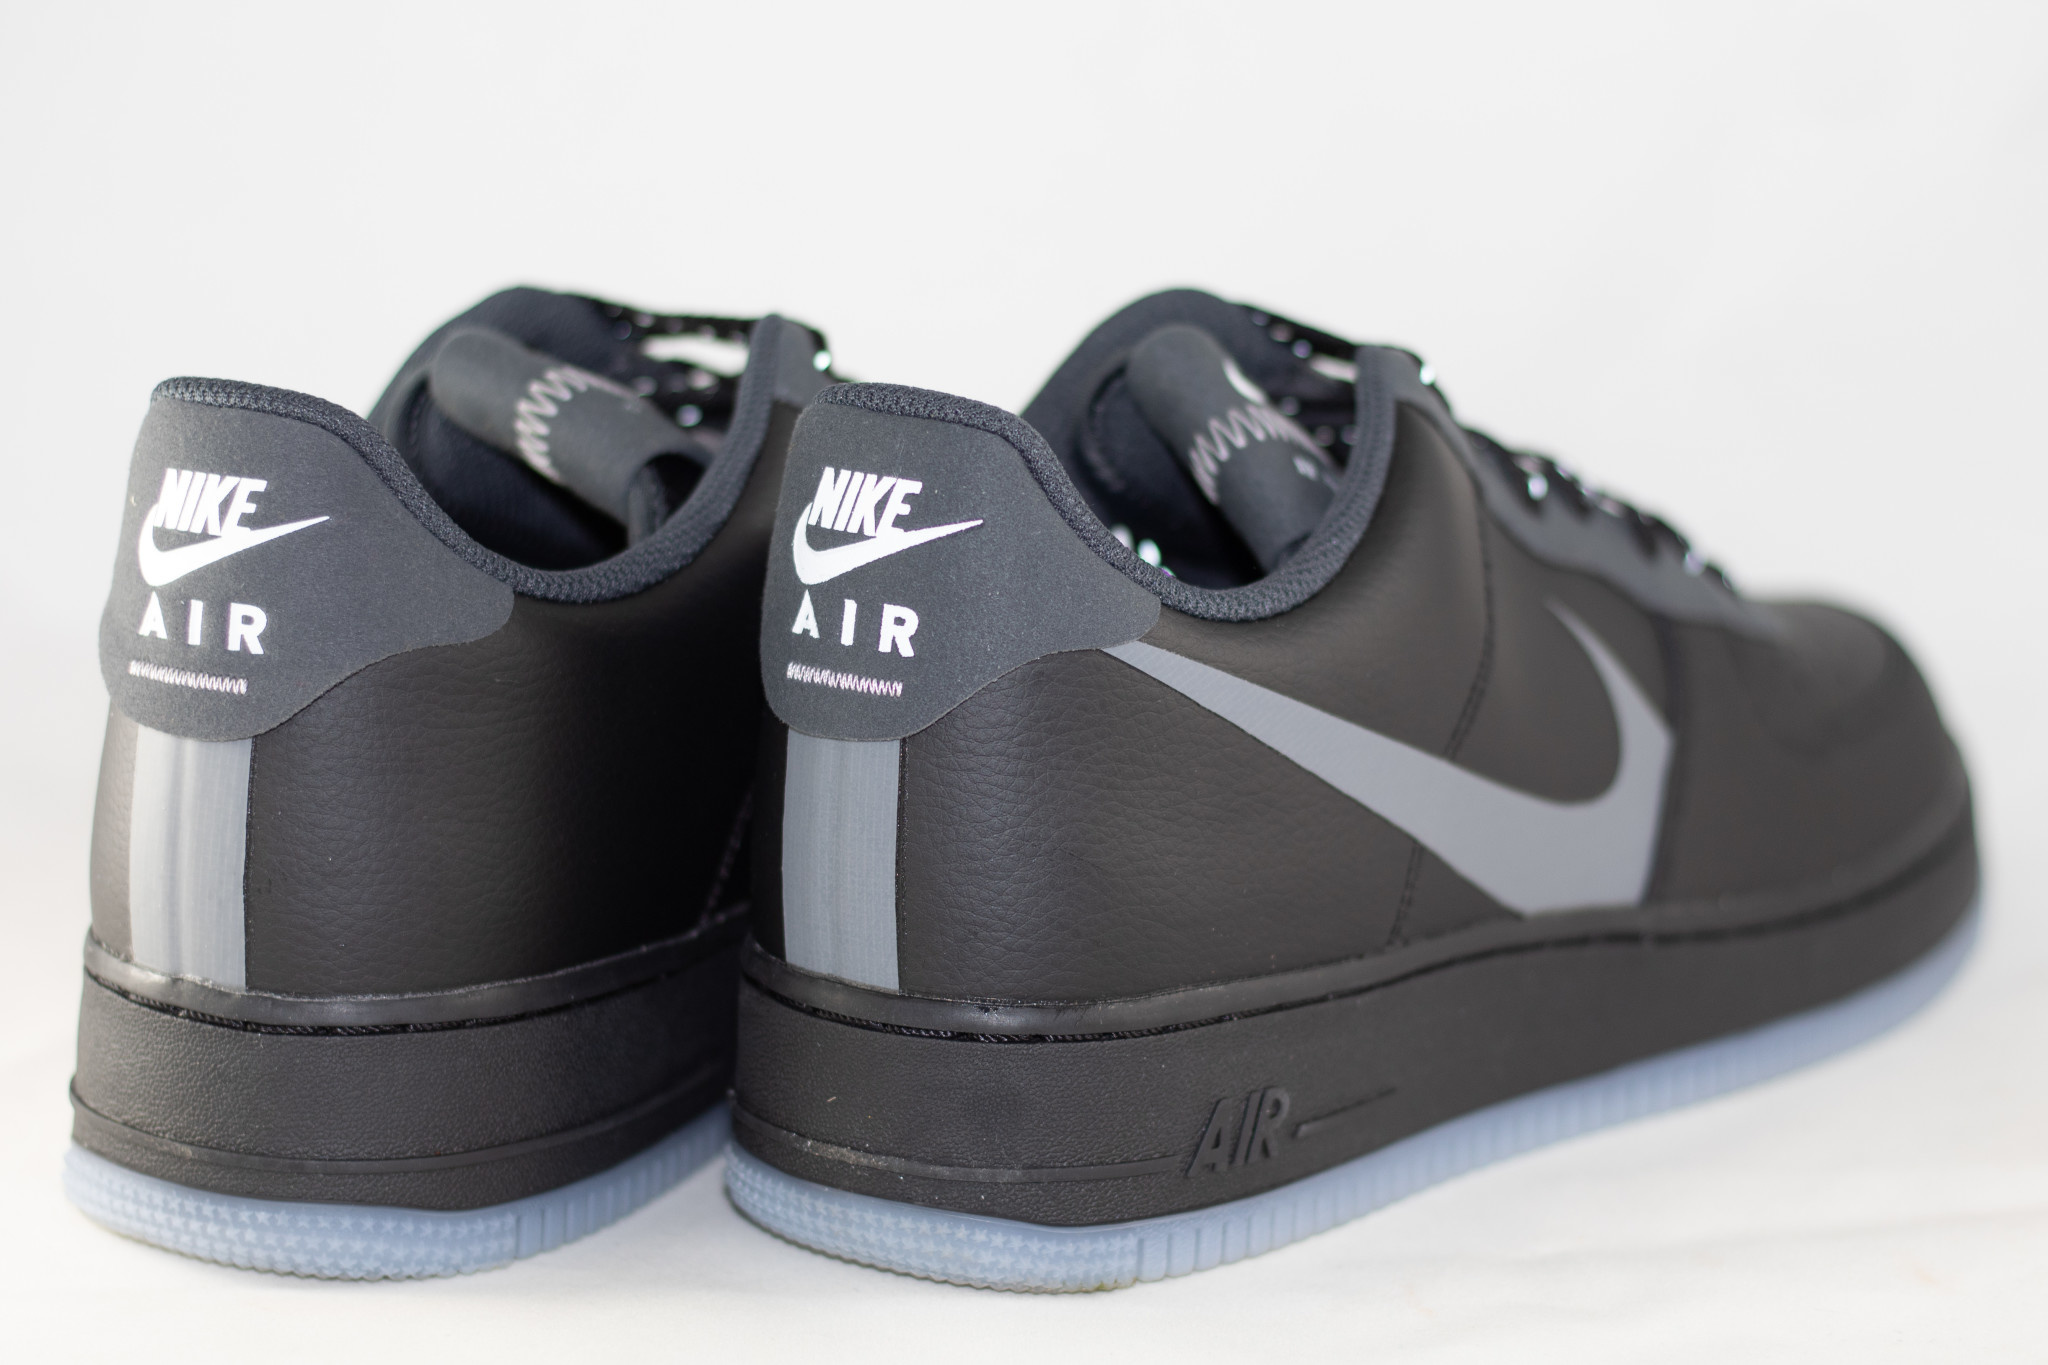 NIKE AIR FORCE 1 '07 LV8 3 Black/ Silver Lilac/ Anthracite